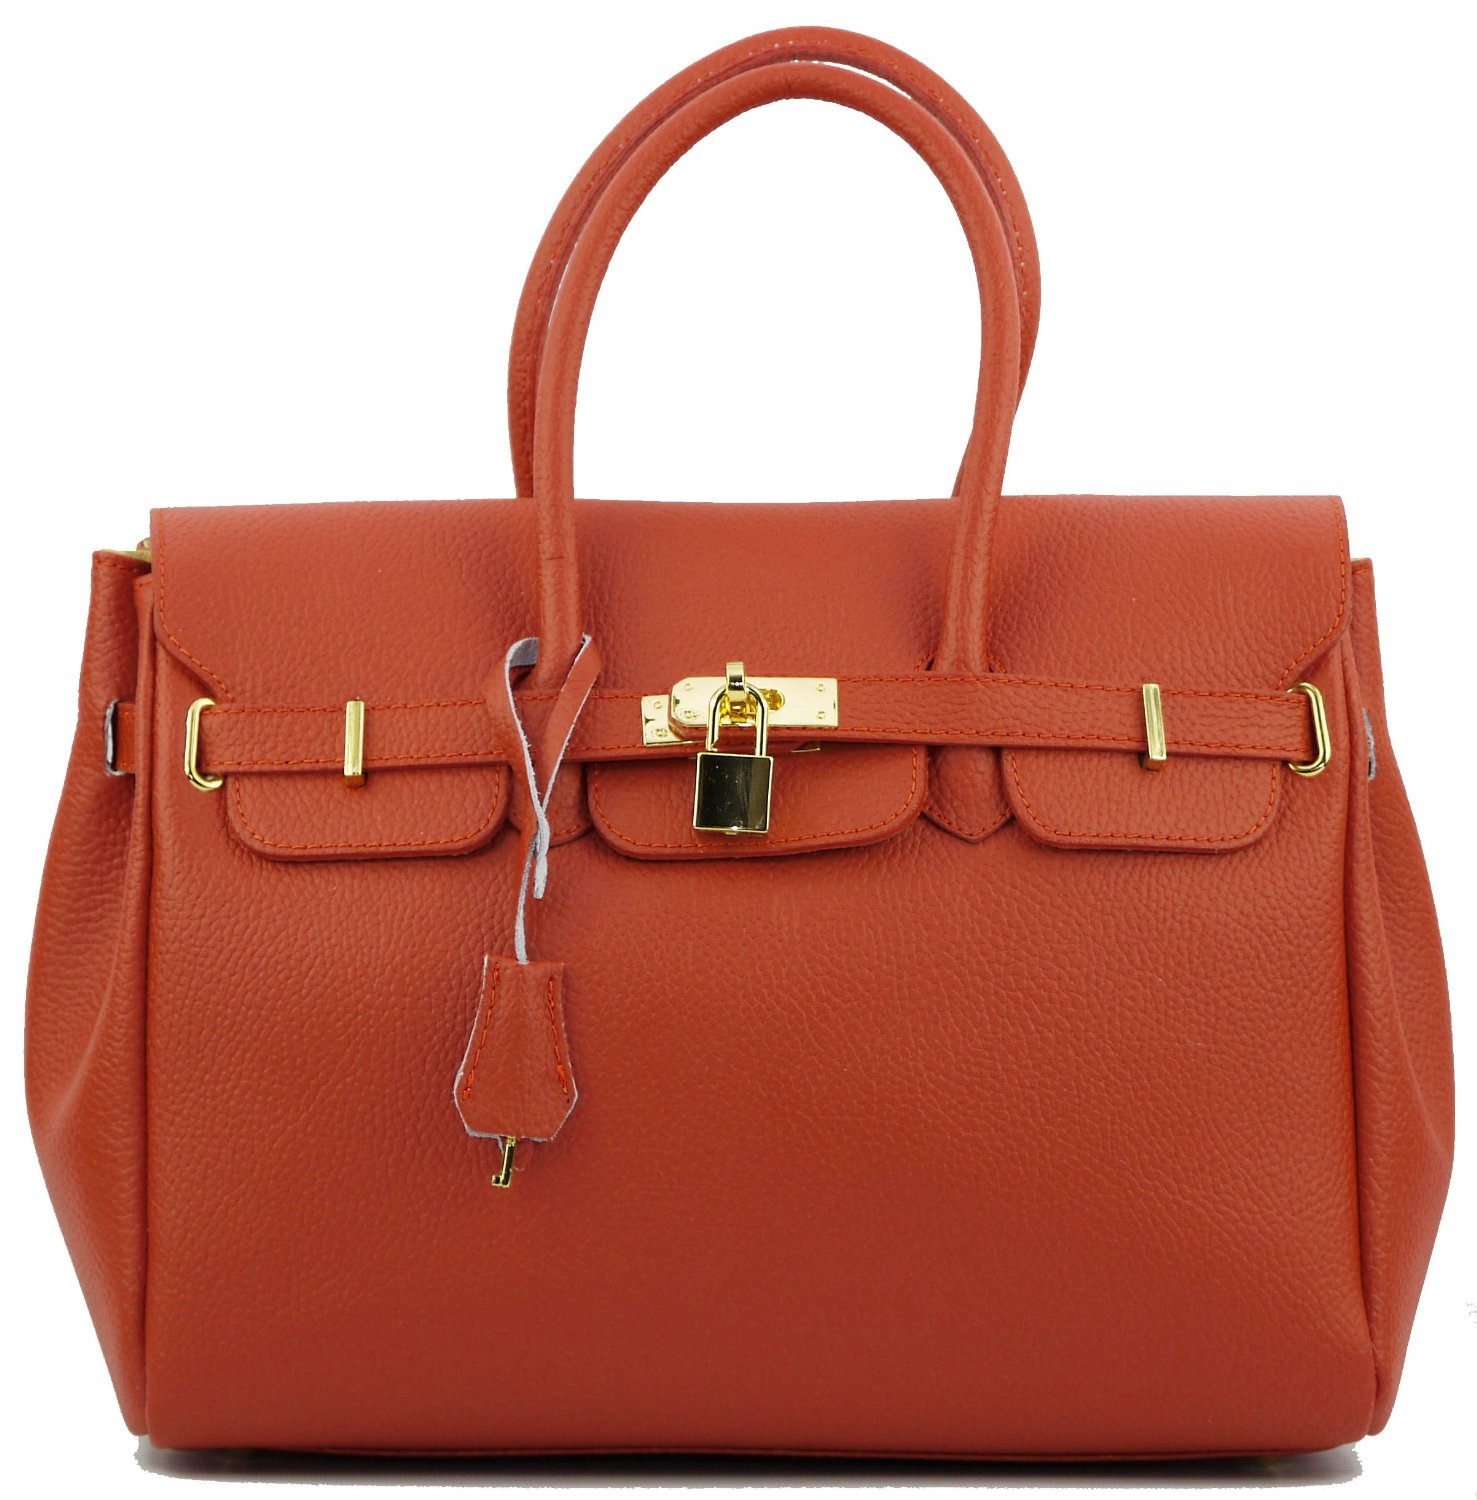 http://www.conmigolondon.co.uk/ekmps/shops/conmigo/images/1a.-real-italian-leather-brealleather-0012-big-tangerine-real-leather-bag-made-in-florence-italy.-2409-p.jpg